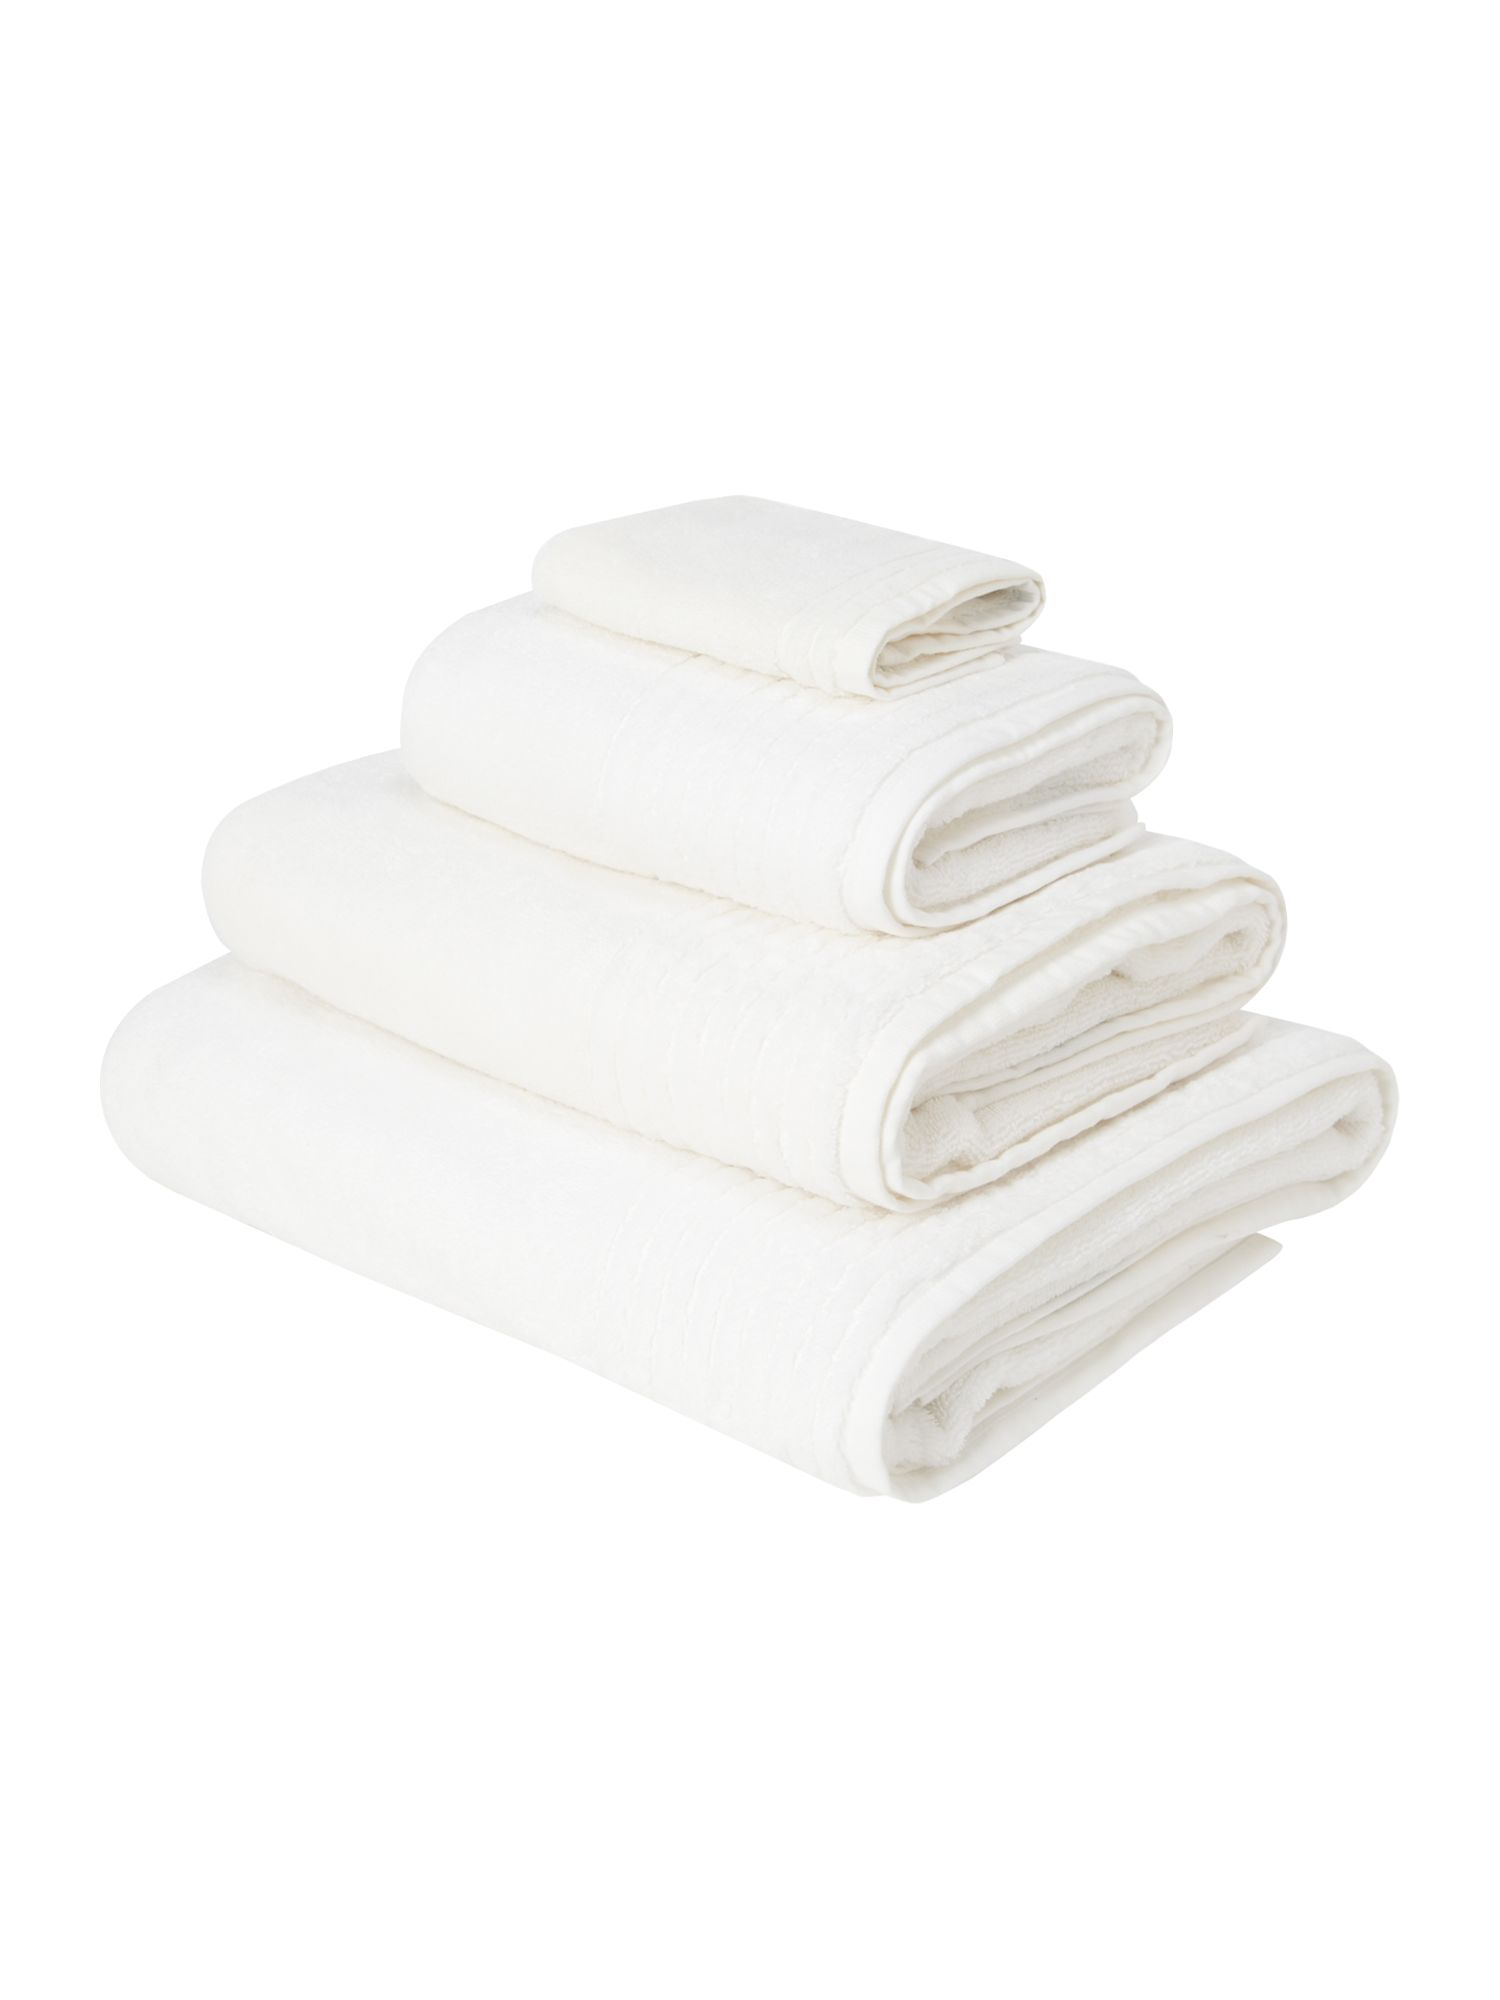 Spa pima cotton towel in Chalk